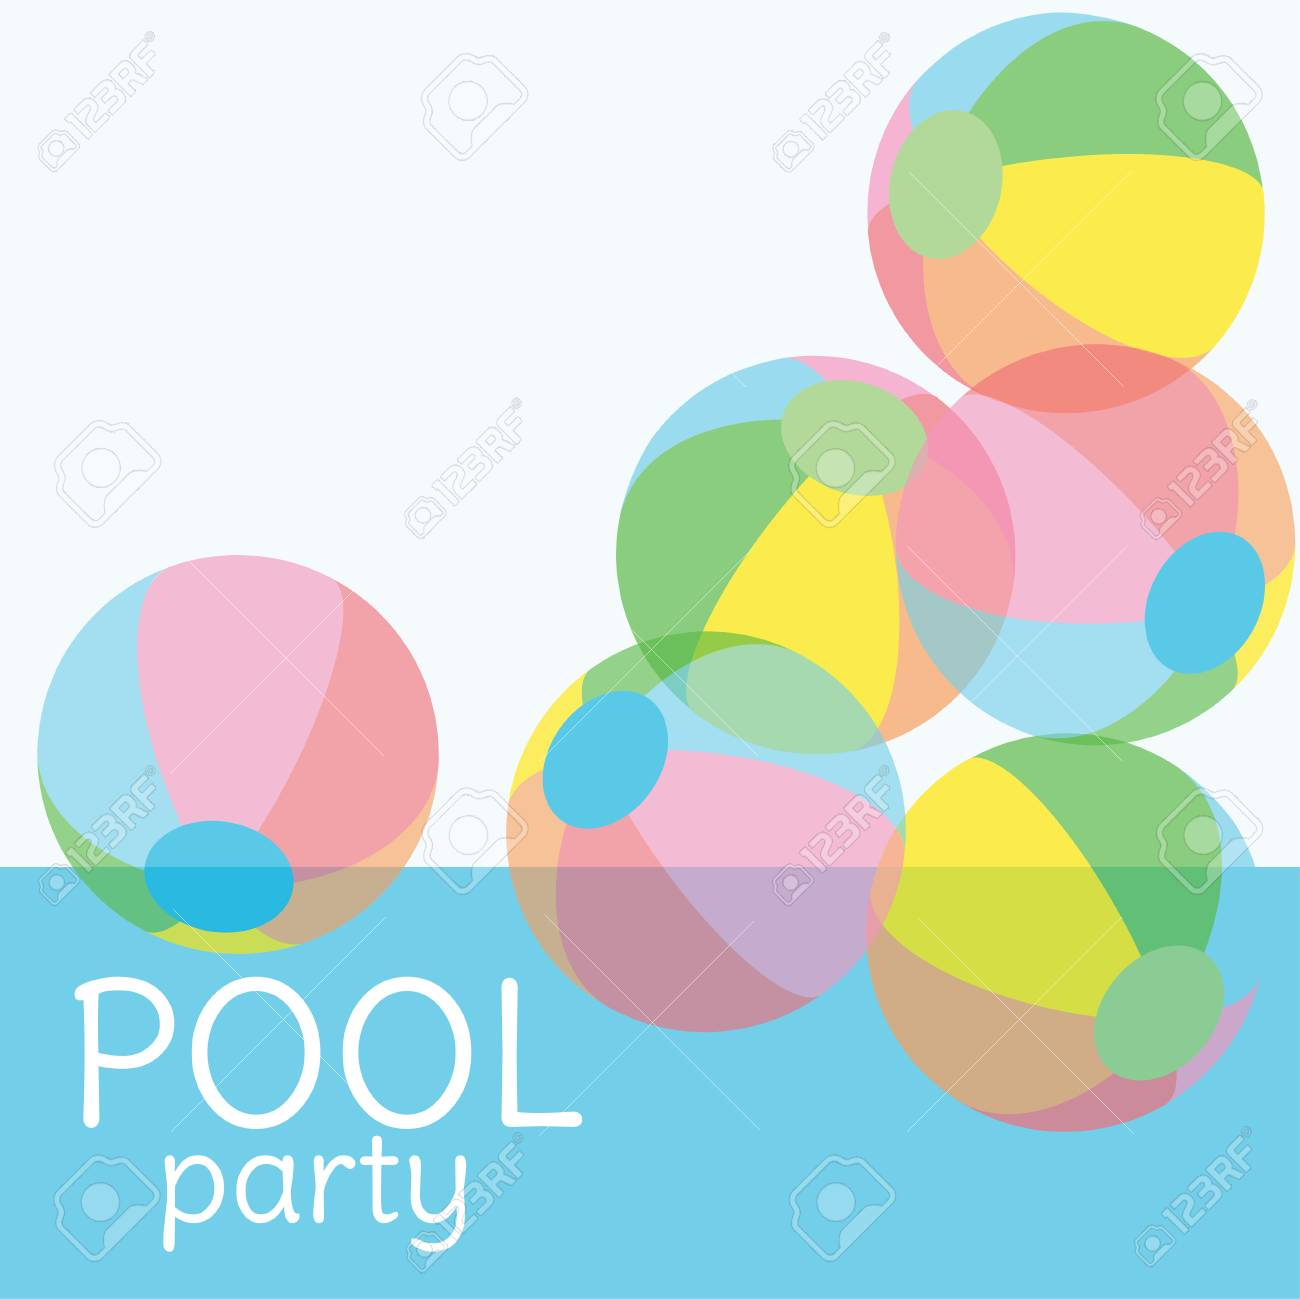 Pool party invitation vector background with copy space for text pool party invitation vector background with copy space for text colorful transparent ball in swimming stopboris Image collections